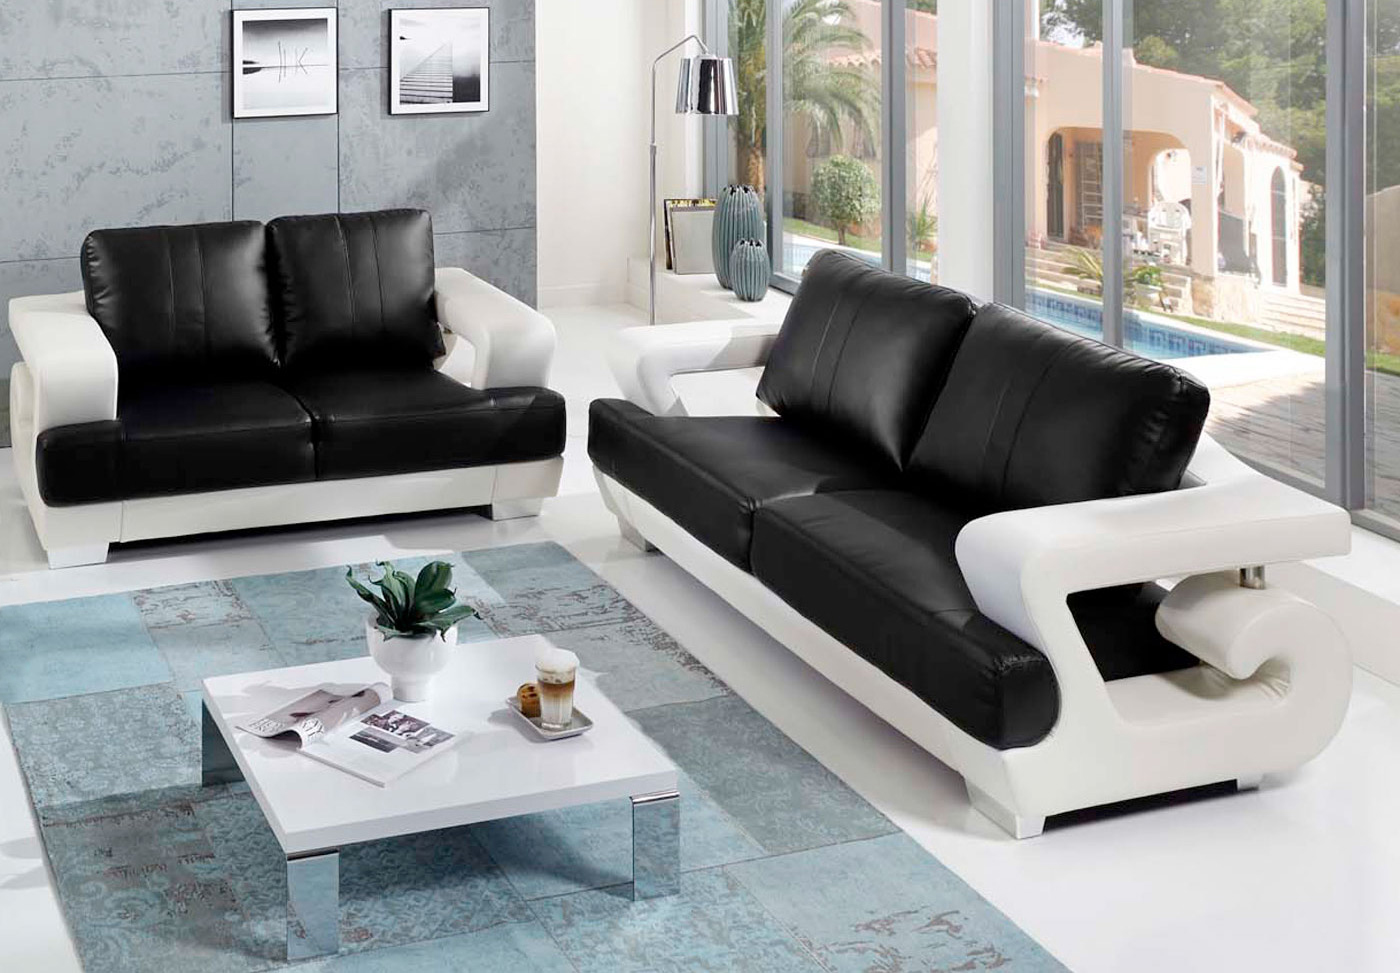 sale sofa couchgarnitur 2tlg wei schwarz antonio. Black Bedroom Furniture Sets. Home Design Ideas